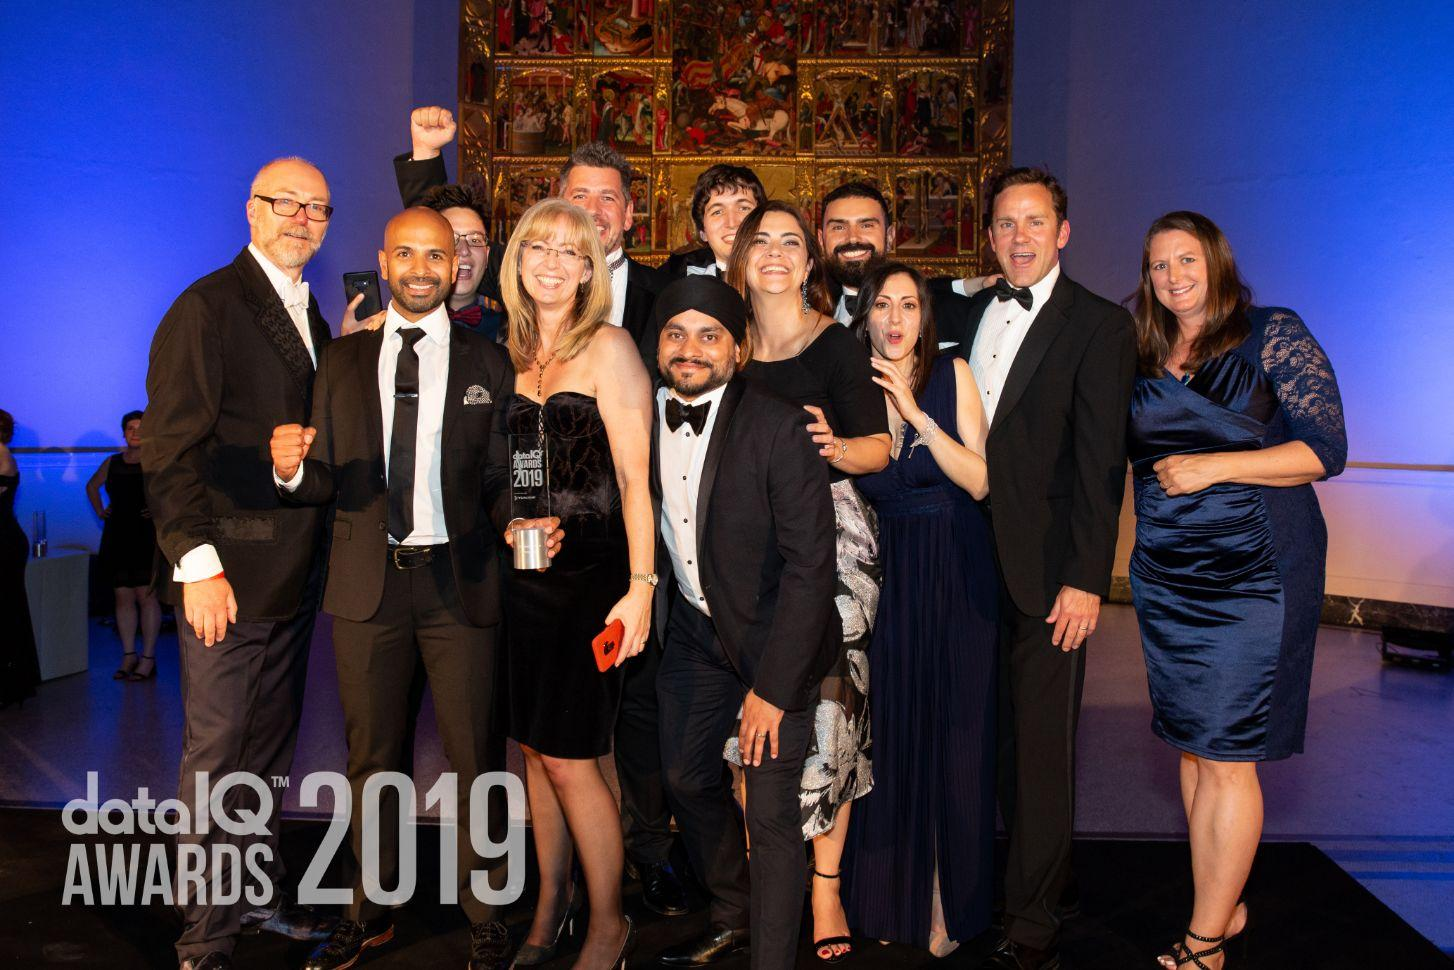 Awards 2019 Image 73